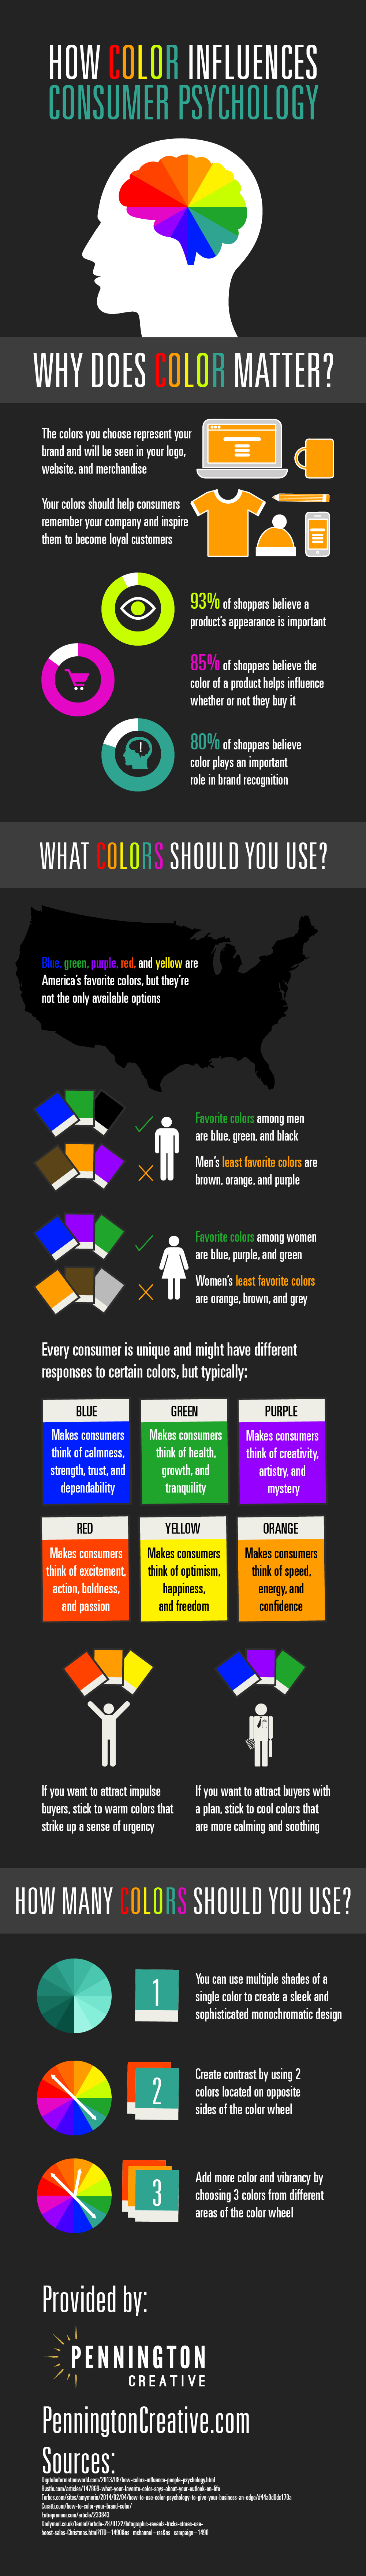 Infographic about how different colors affect the psychology of consumers.